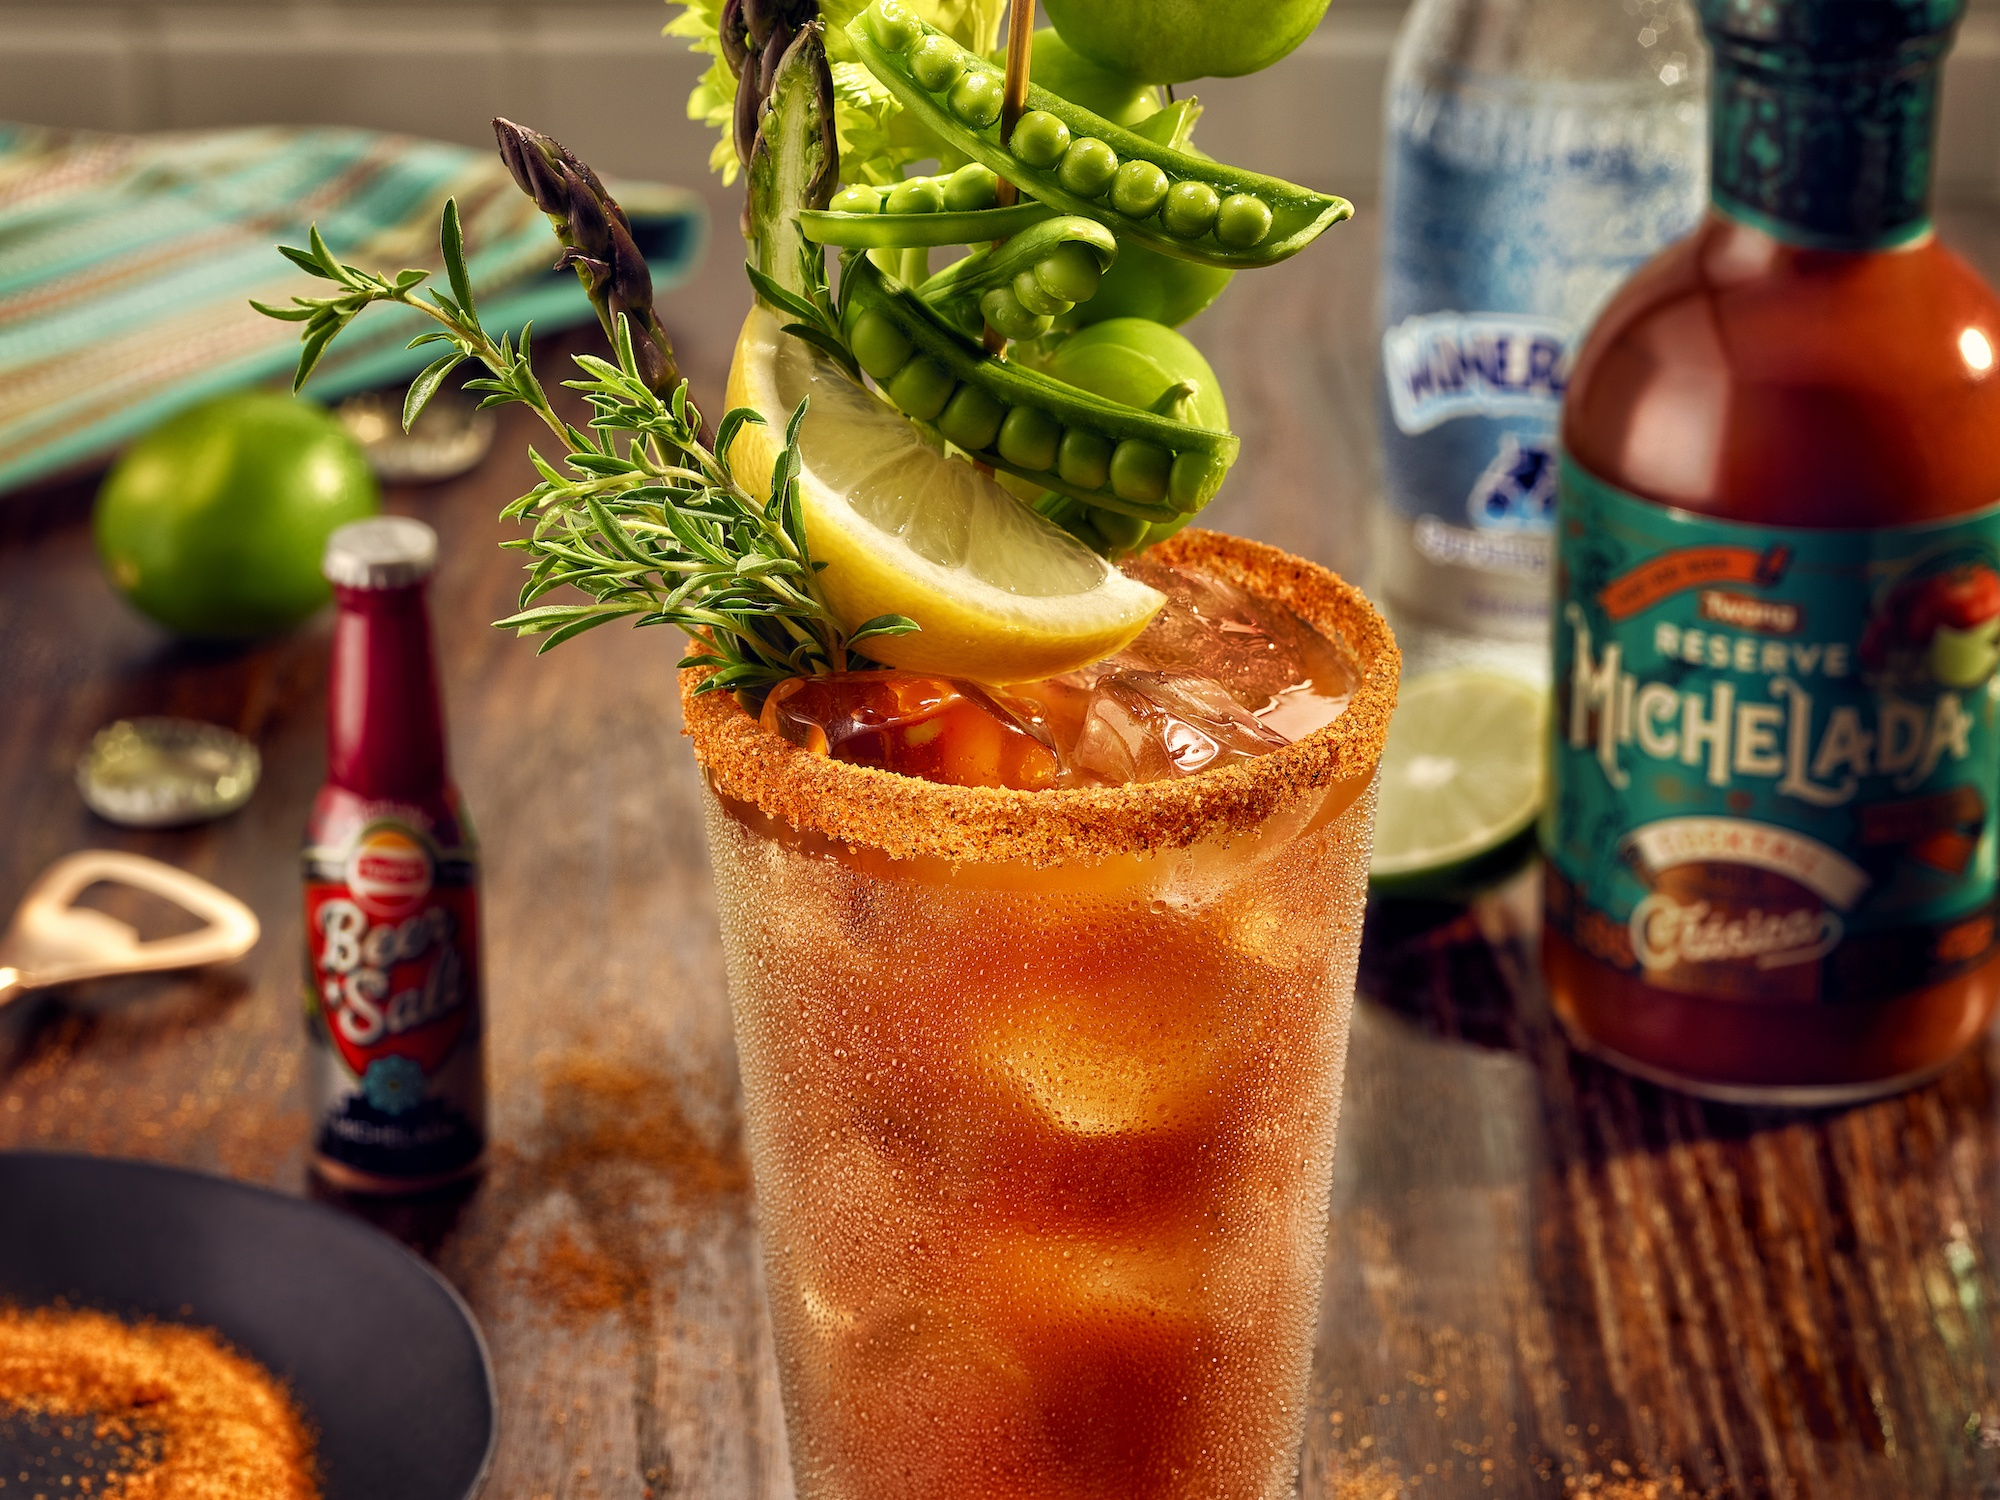 Celebrate National Michelada Day On July 12 With Twang's Michelada Mix